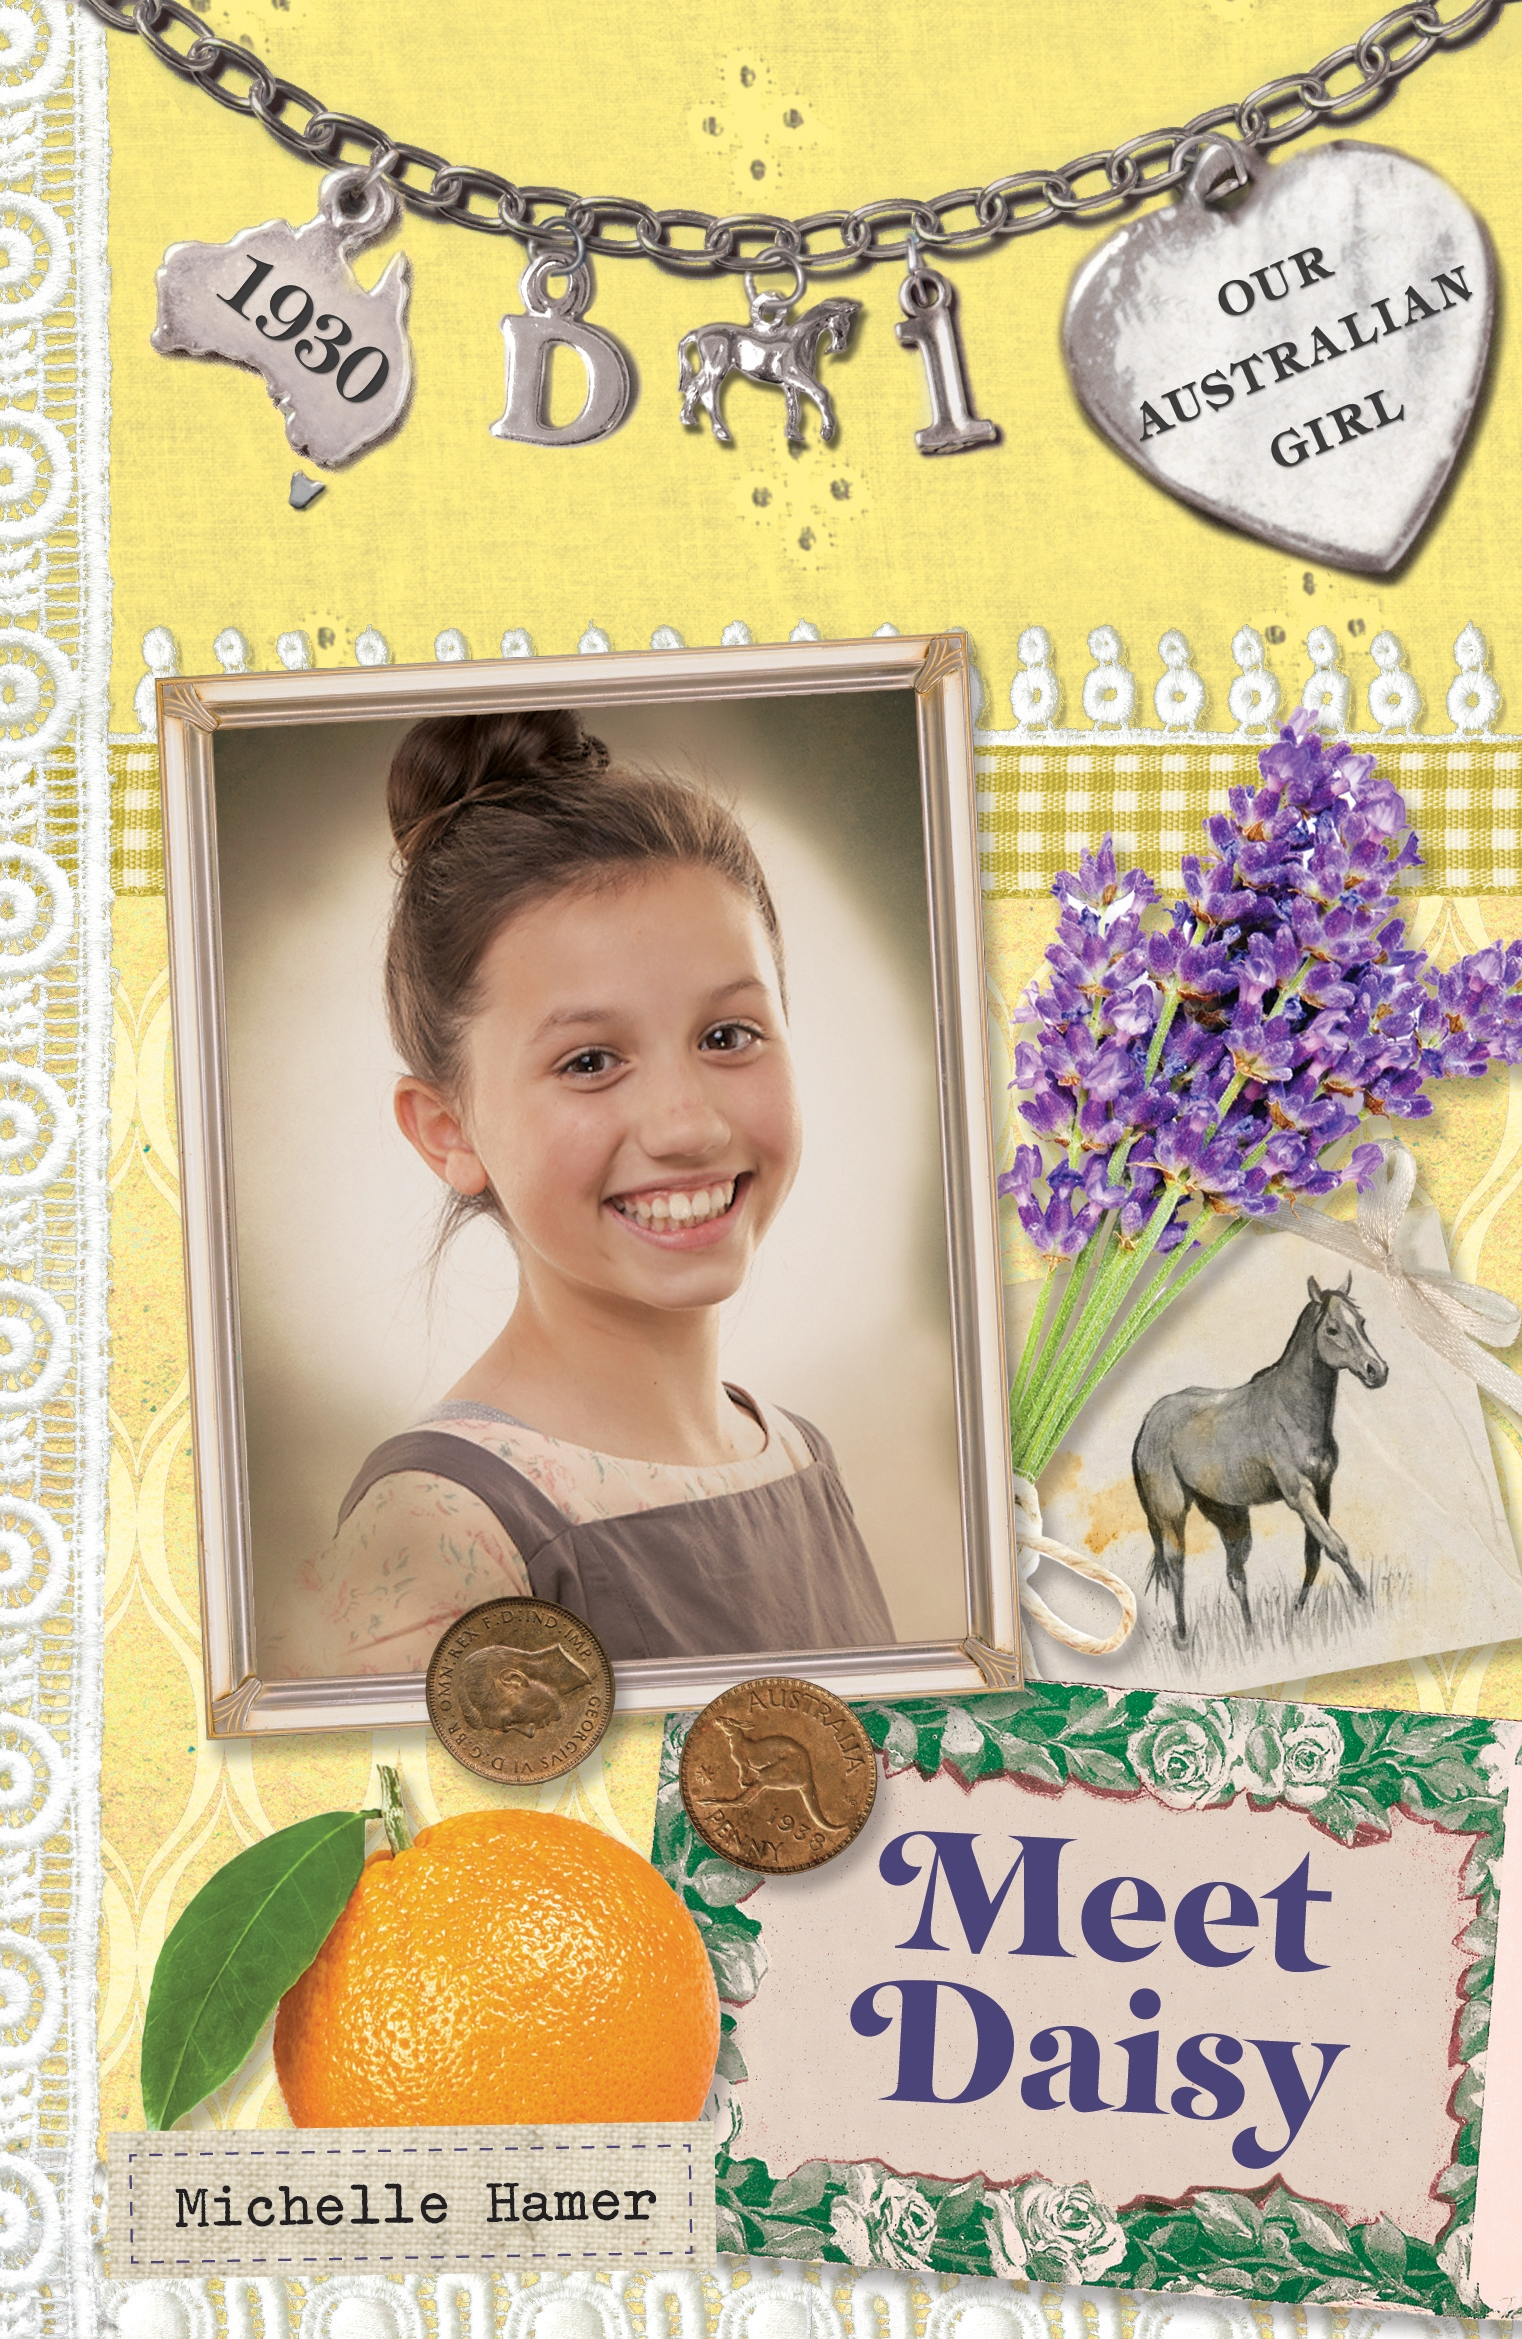 Book Cover:  Our Australian Girl: Meet Daisy (Book 1)